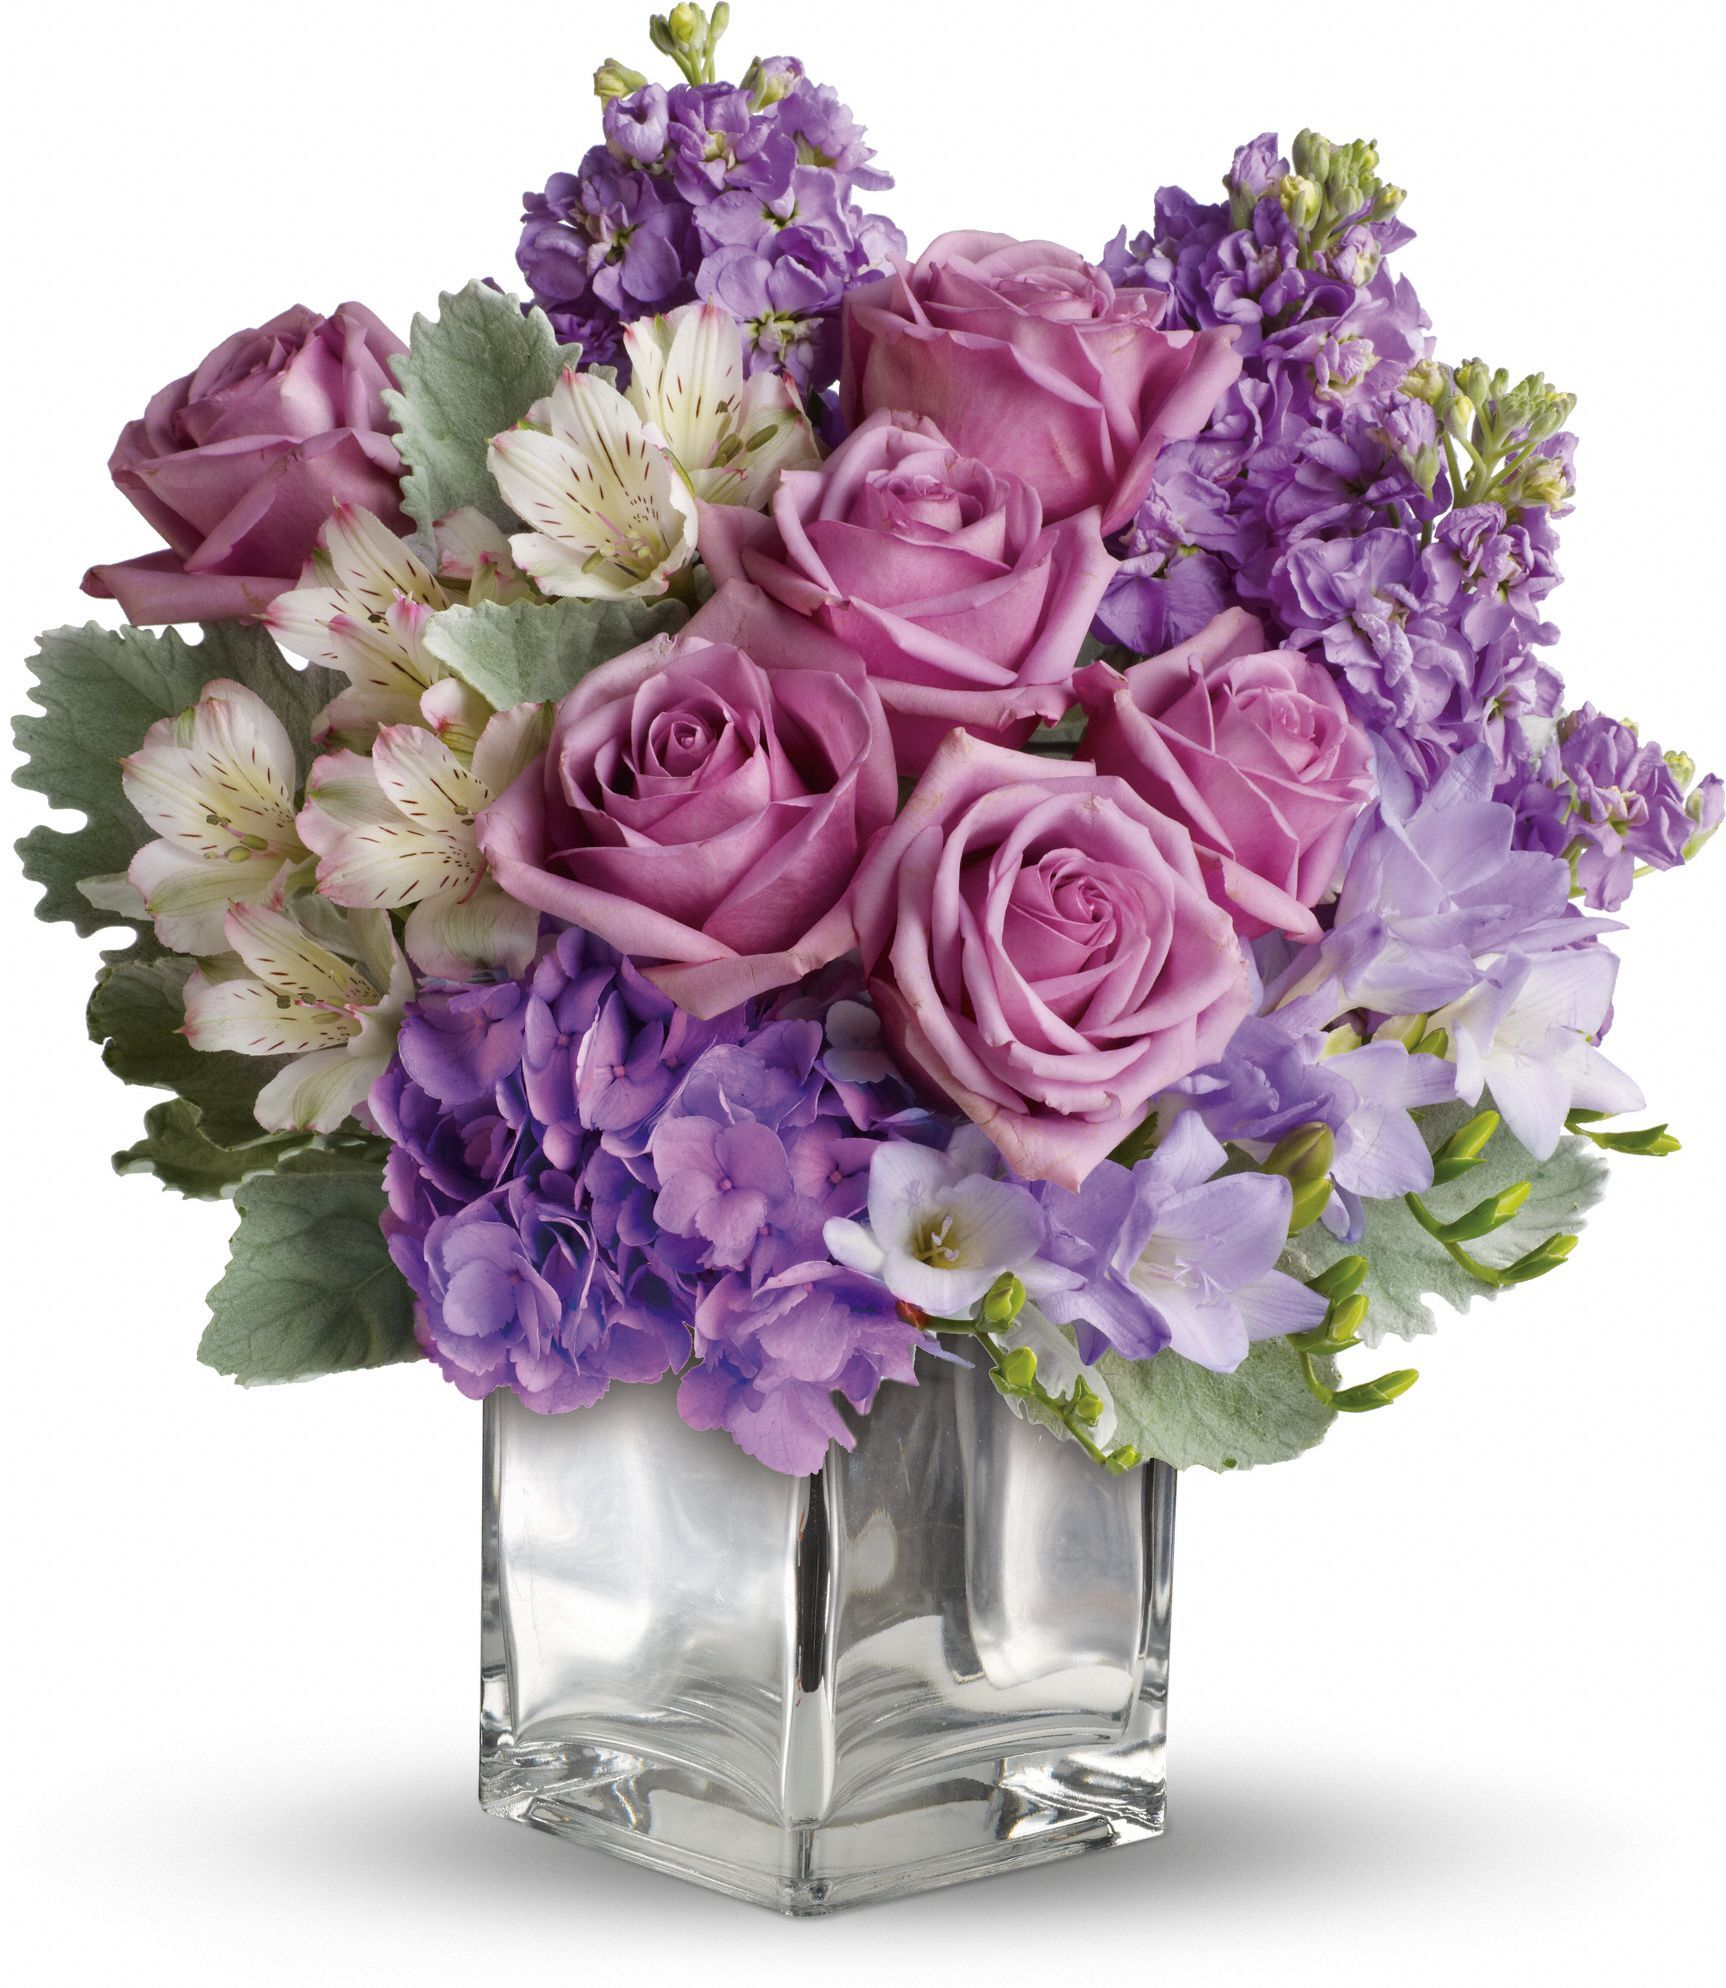 Sweet as Sugar by Teleflora Save 25 on this bouquet and